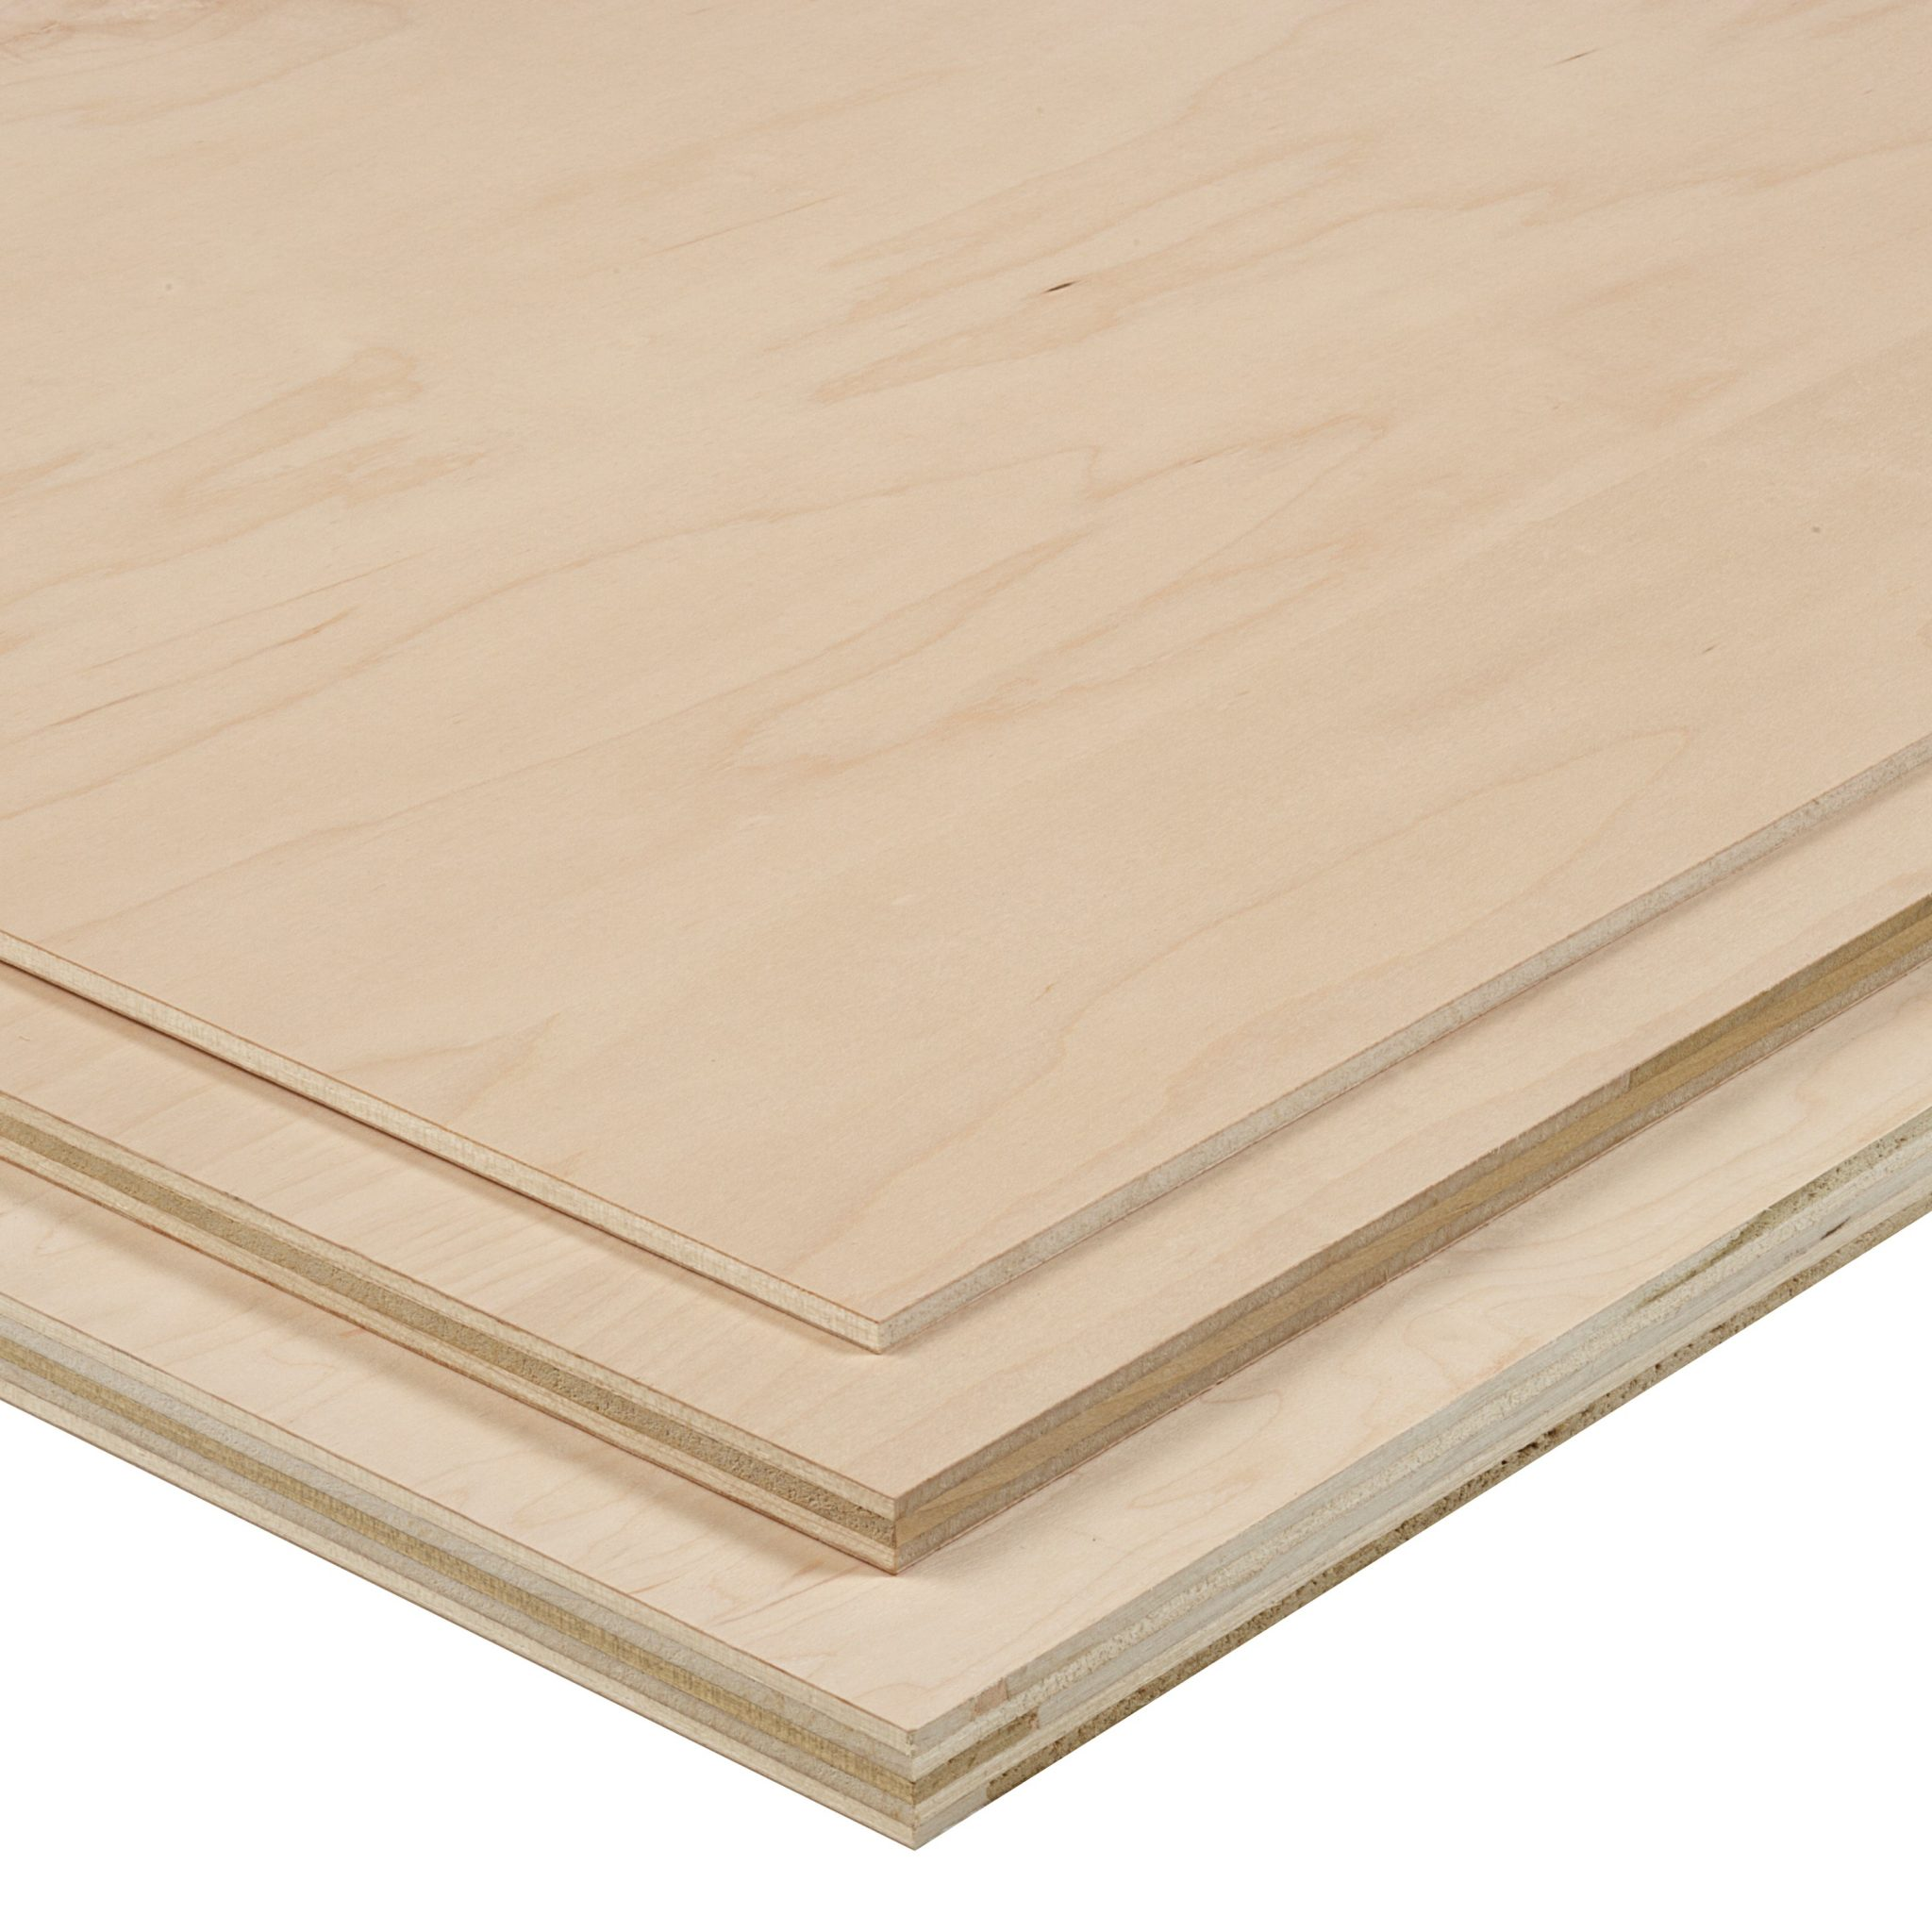 Selecting Hardwood Plywood for Cabinetry  Columbia Forest